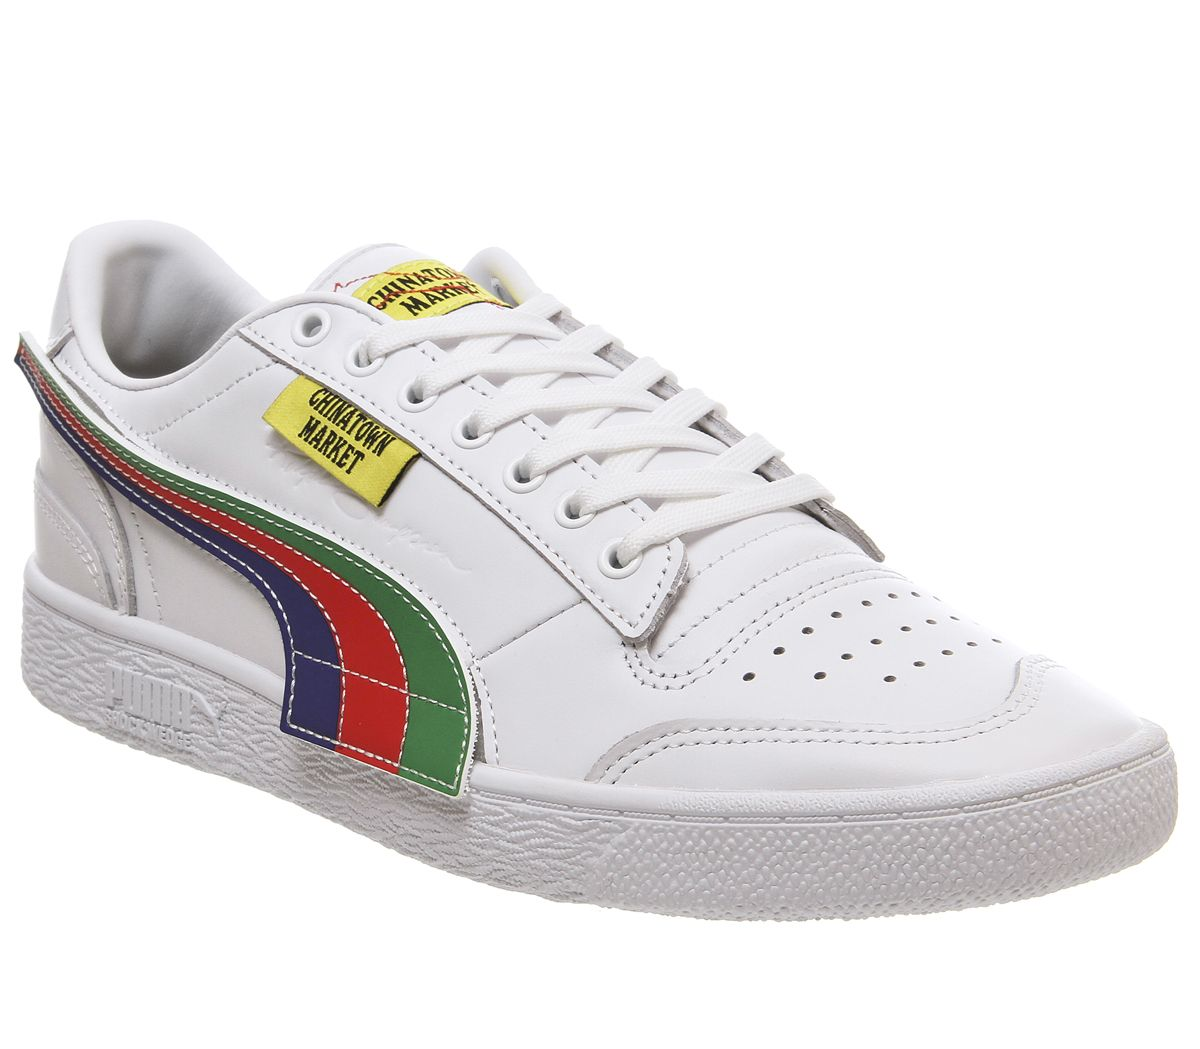 new arrivals outlet top quality Hommes puma Ralph Sampson Lo Chinatown Marché puma Blanc Baskets ...